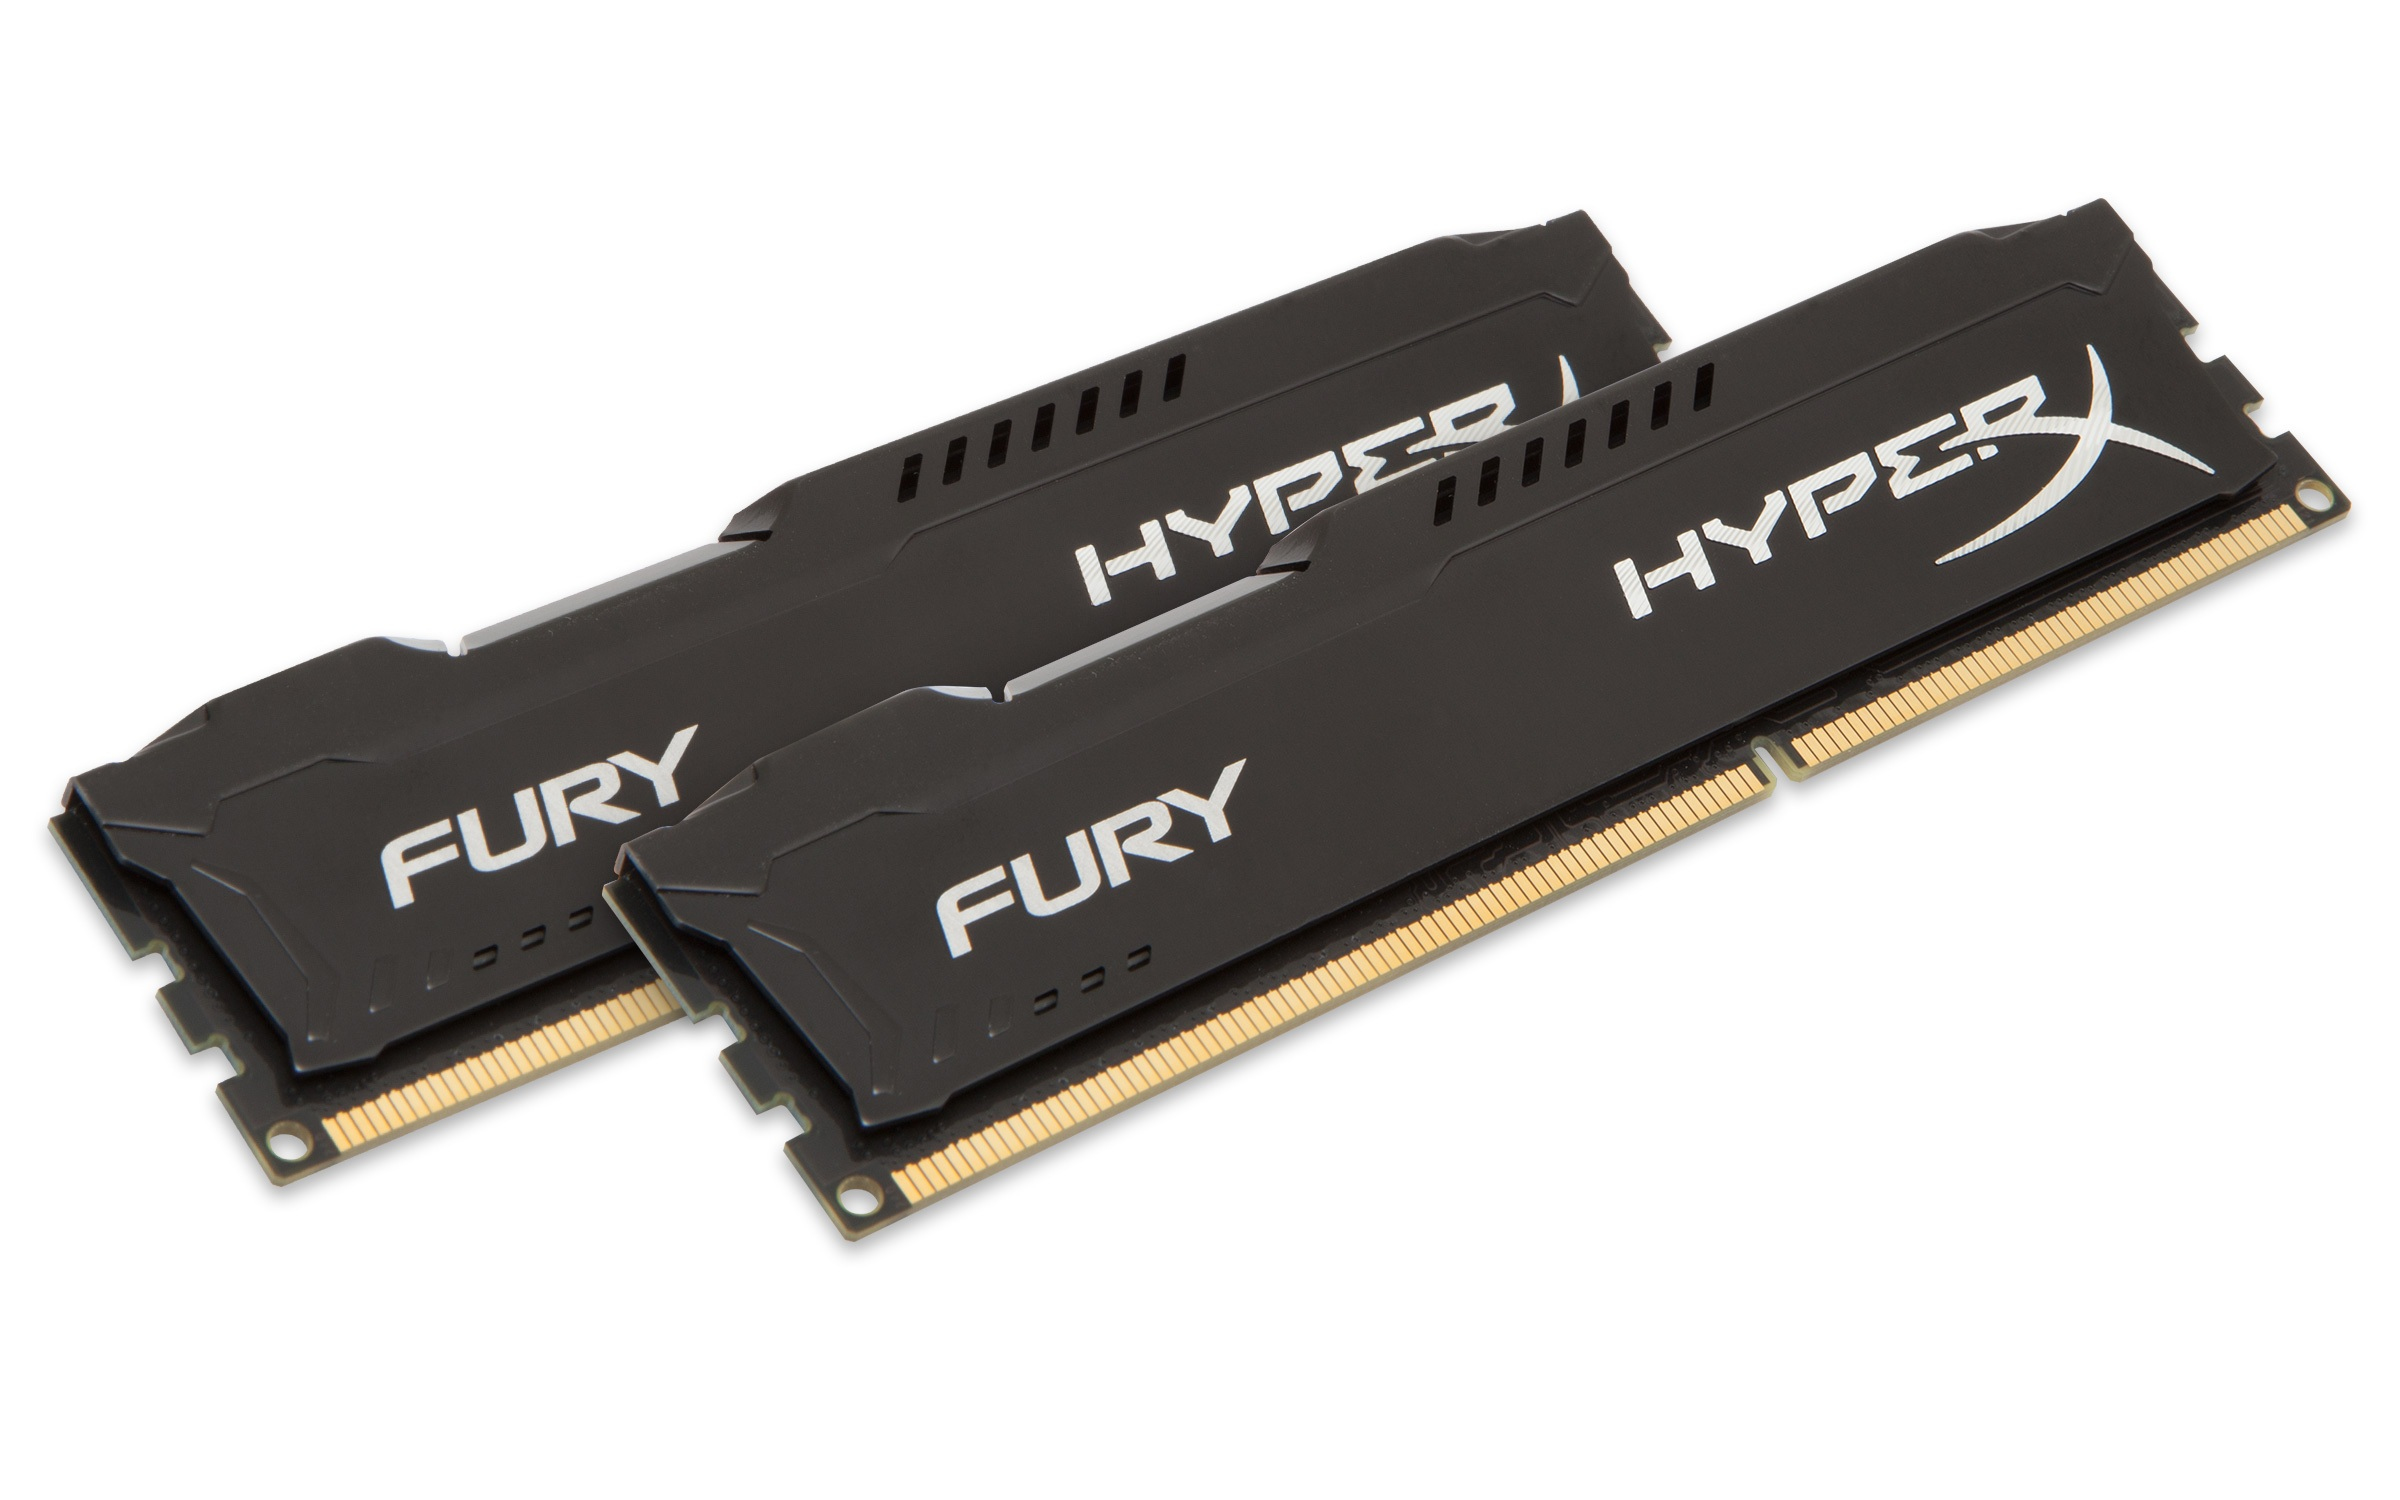 price of 16GB 1600MHz DDR3 CL10 DIMM (Kit of 2) HyperX FURY Black on ShopHub | ecommerce, price check, start a business, sell online